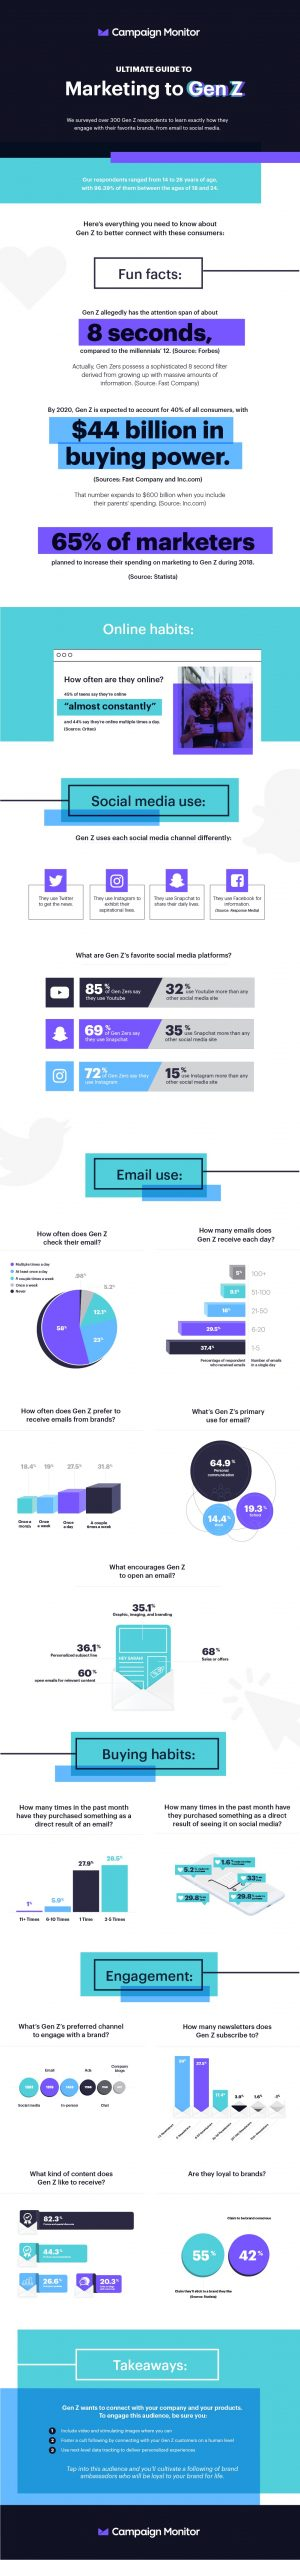 The Ultimate Guide to Marketing to Gen Z (Infographic) Image